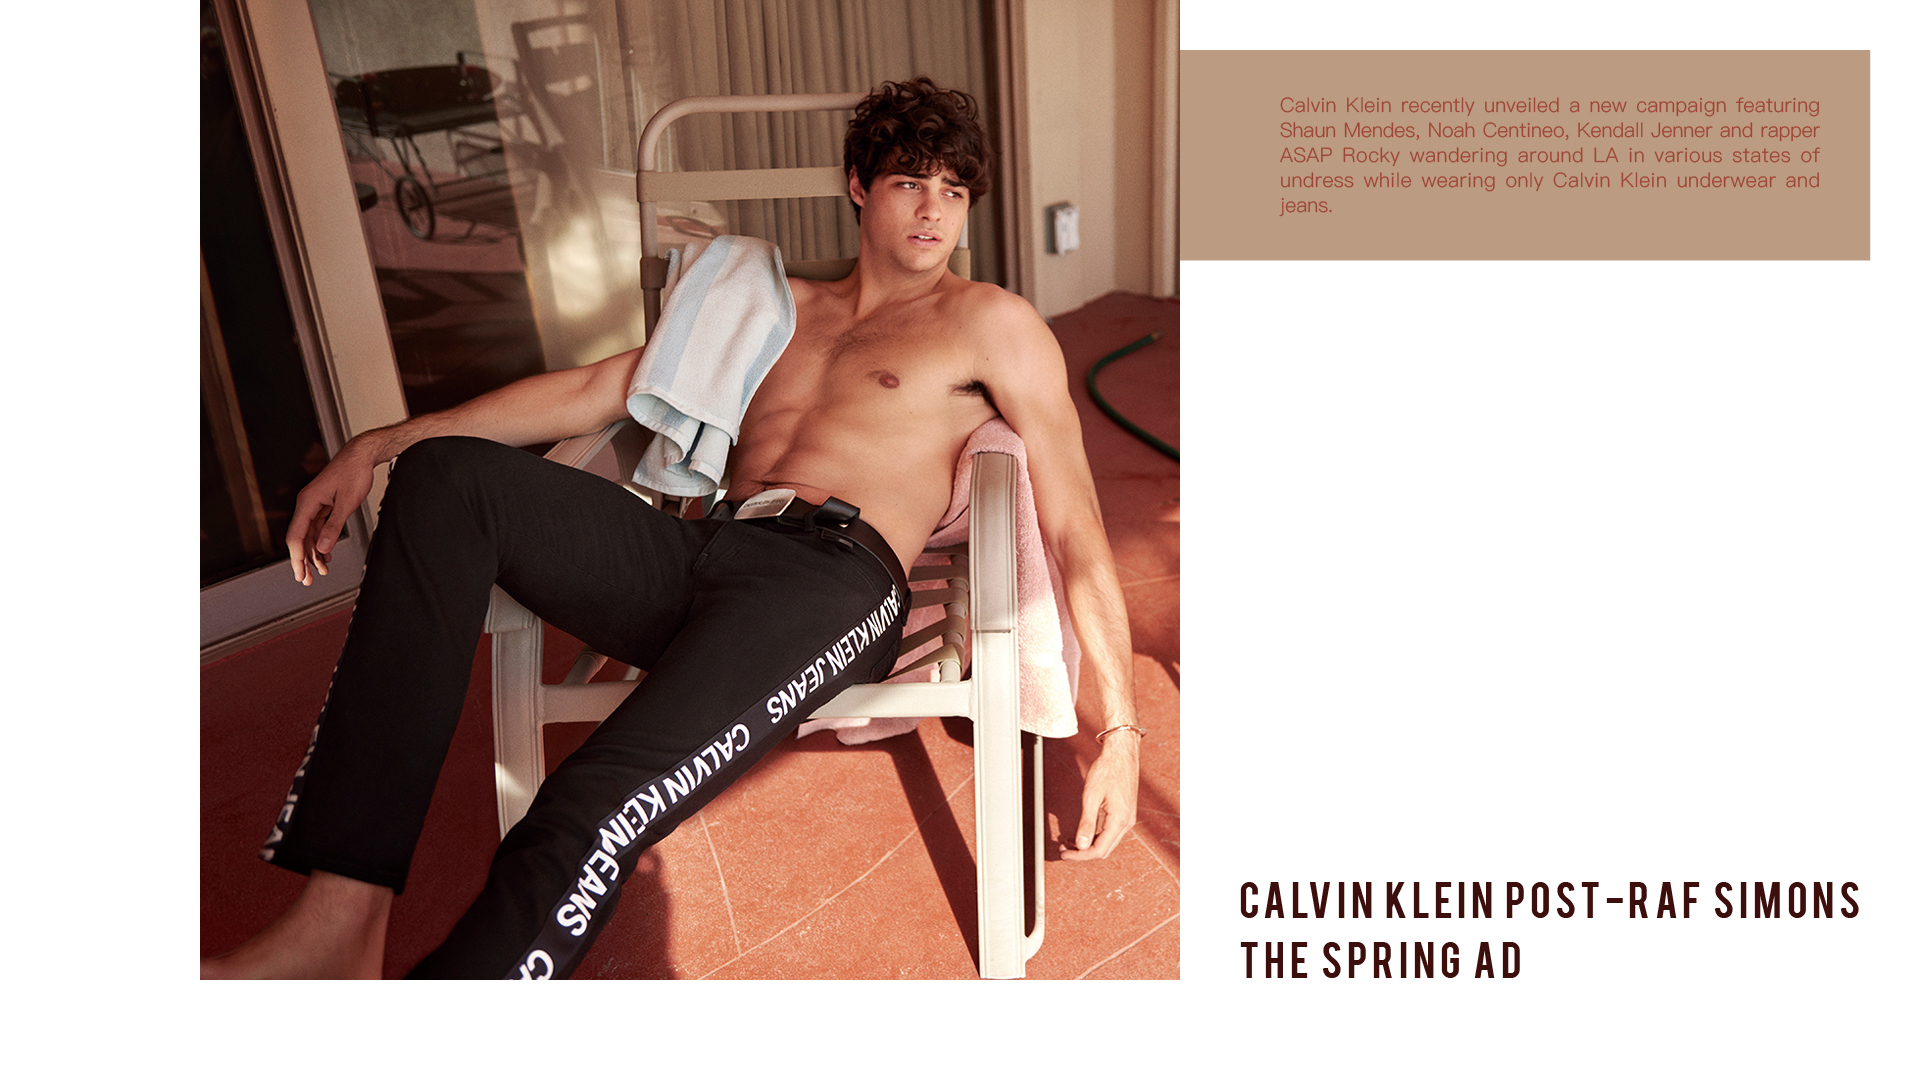 20190221 THEMAKER STYLE | Calvin Klein Post-Raf Simons   the Spring AD.jpg